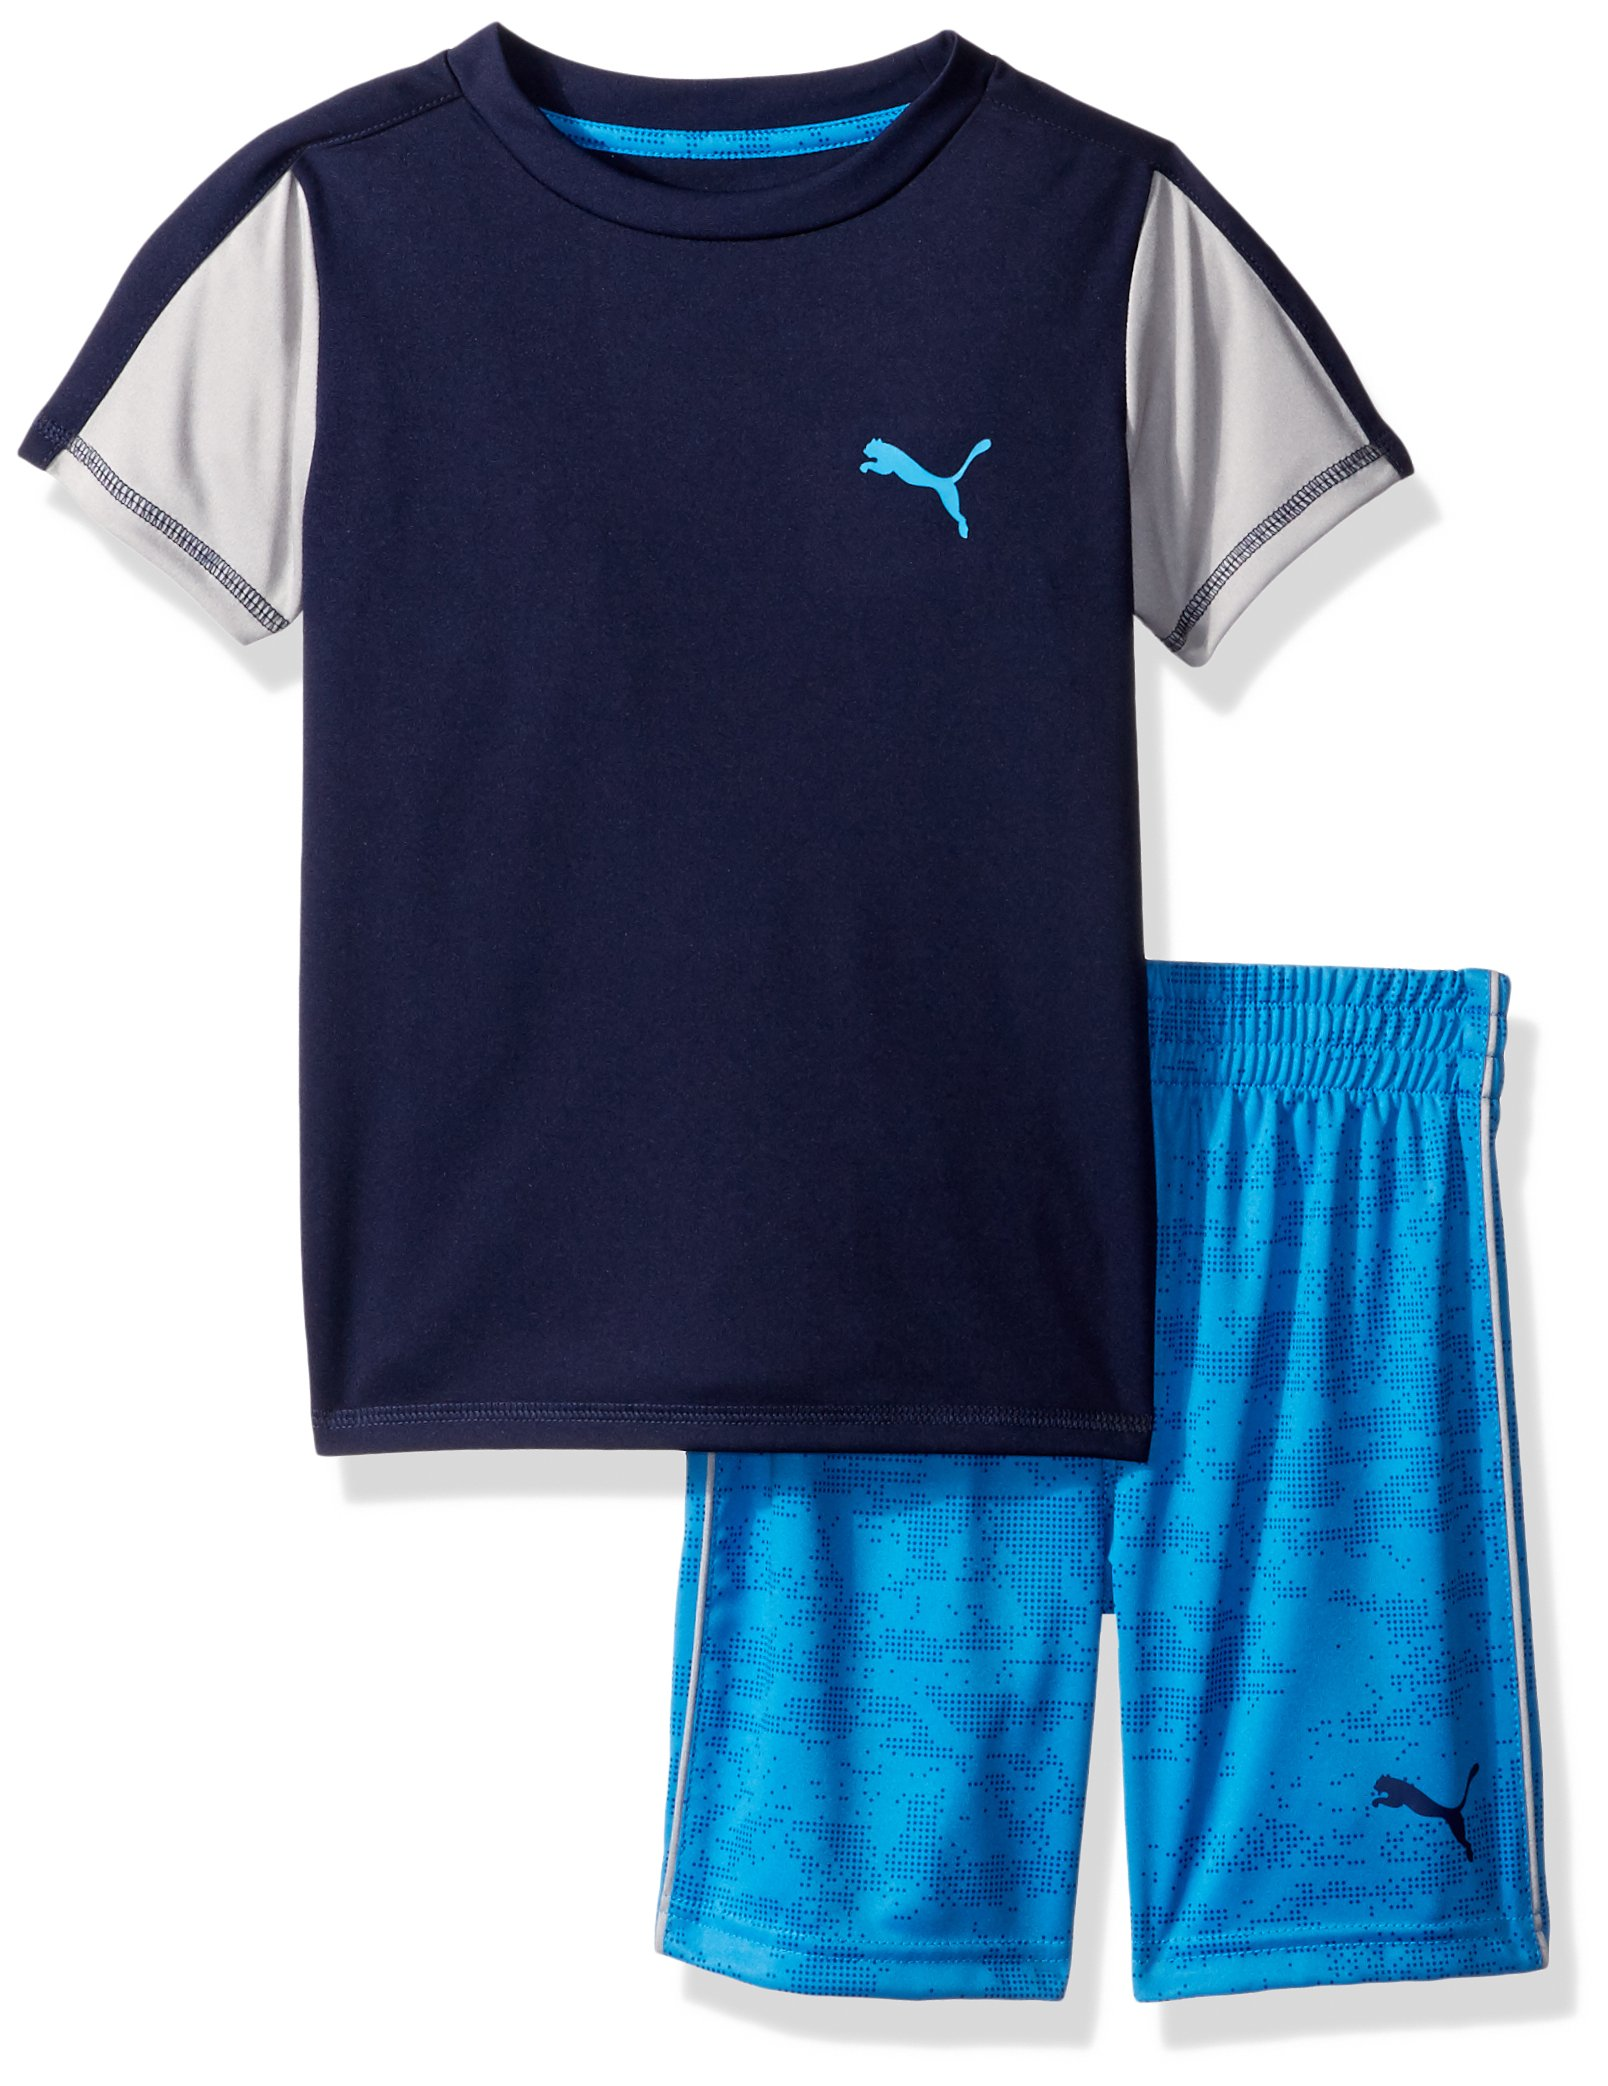 PUMA Little Boys' 2 Piece Tee Short Set, Peacoat, 6